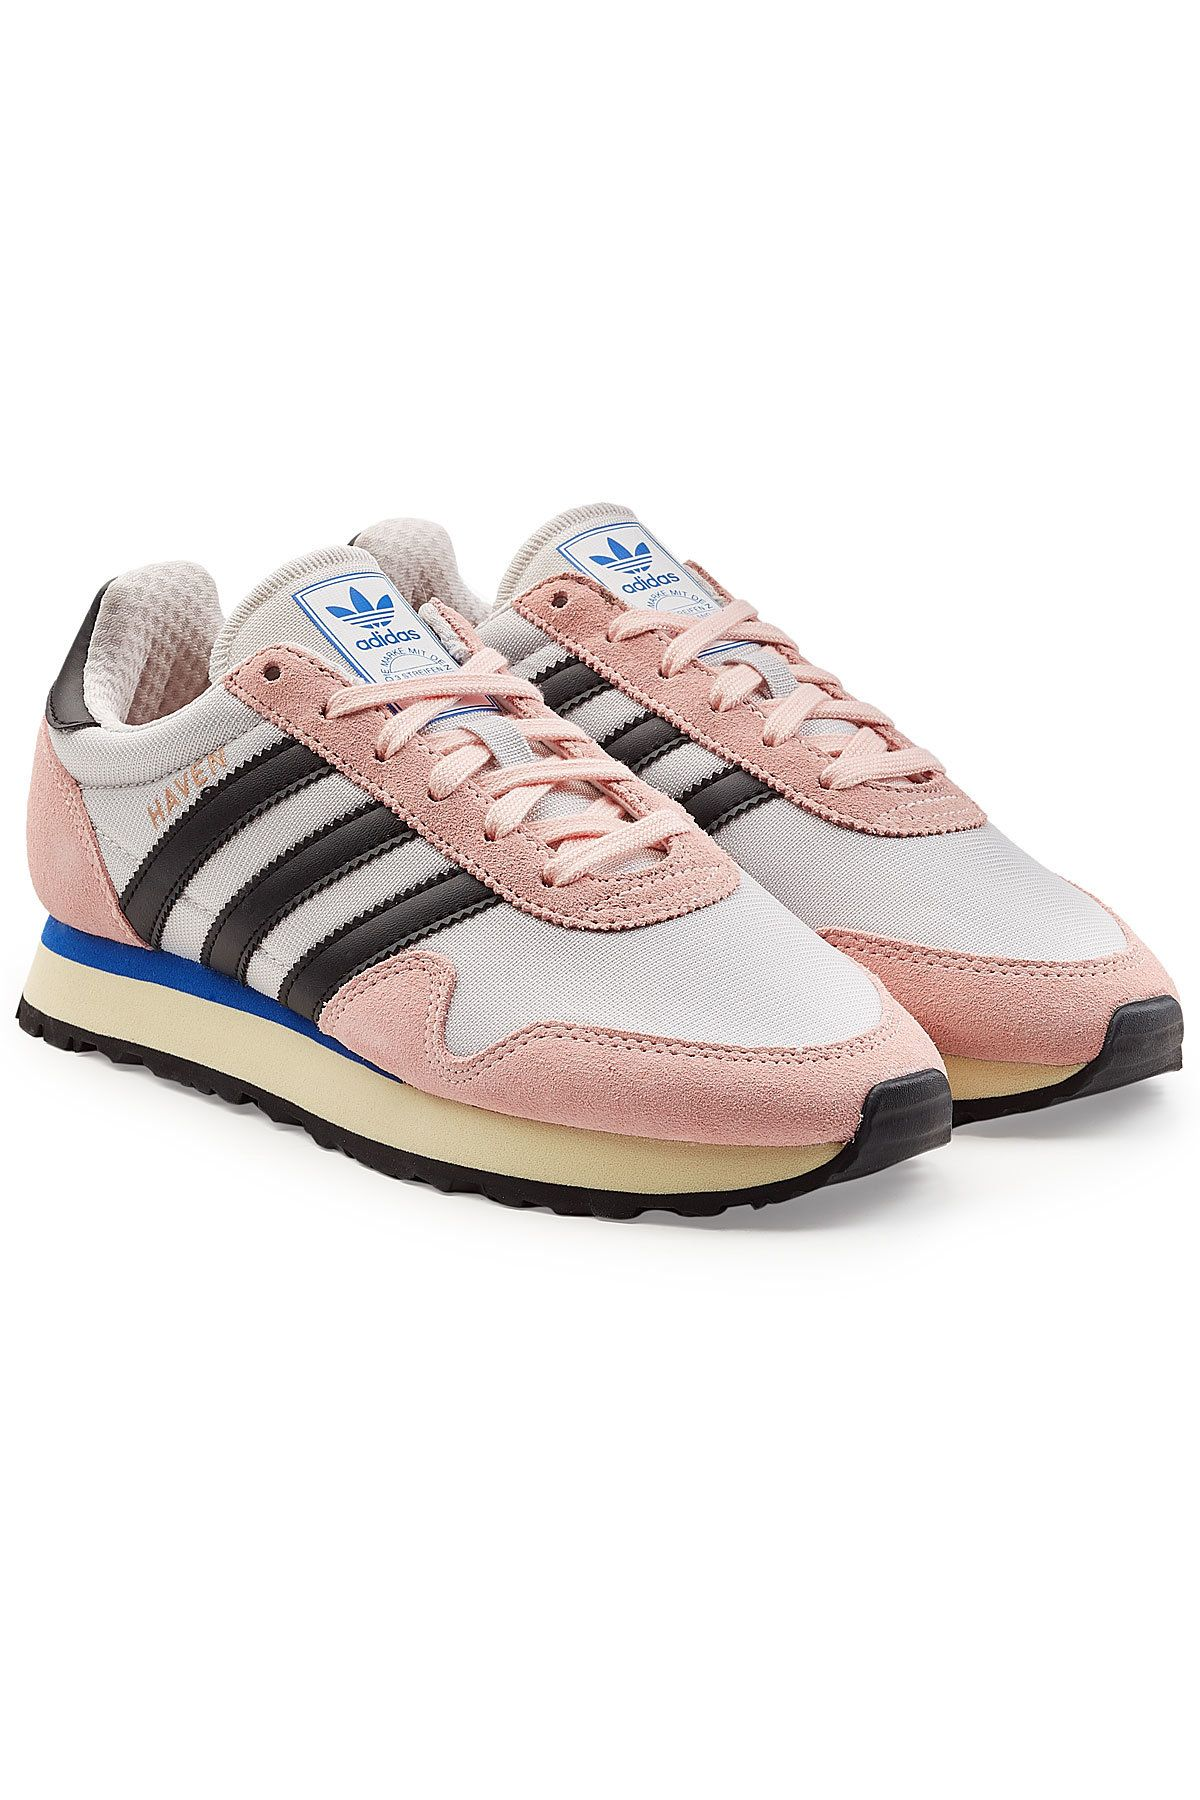 aa128b95cd656d ADIDAS ORIGINALS - Haven Sneakers with Leather and Sued